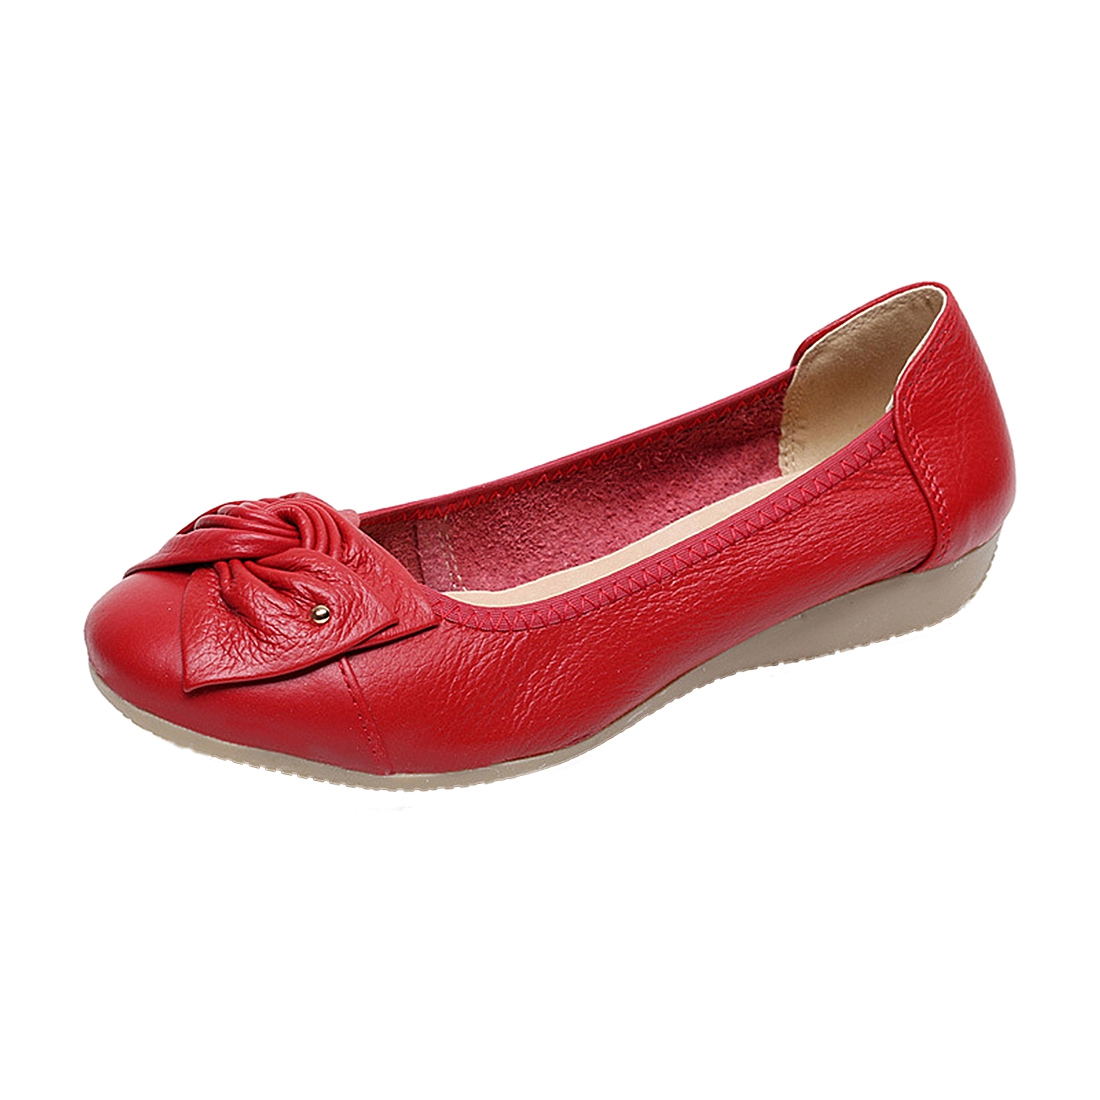 Handmade genuine leather ballet women female casual shoes women flats shoes slip on car-styling driving loafer Red US11 ballet shoes